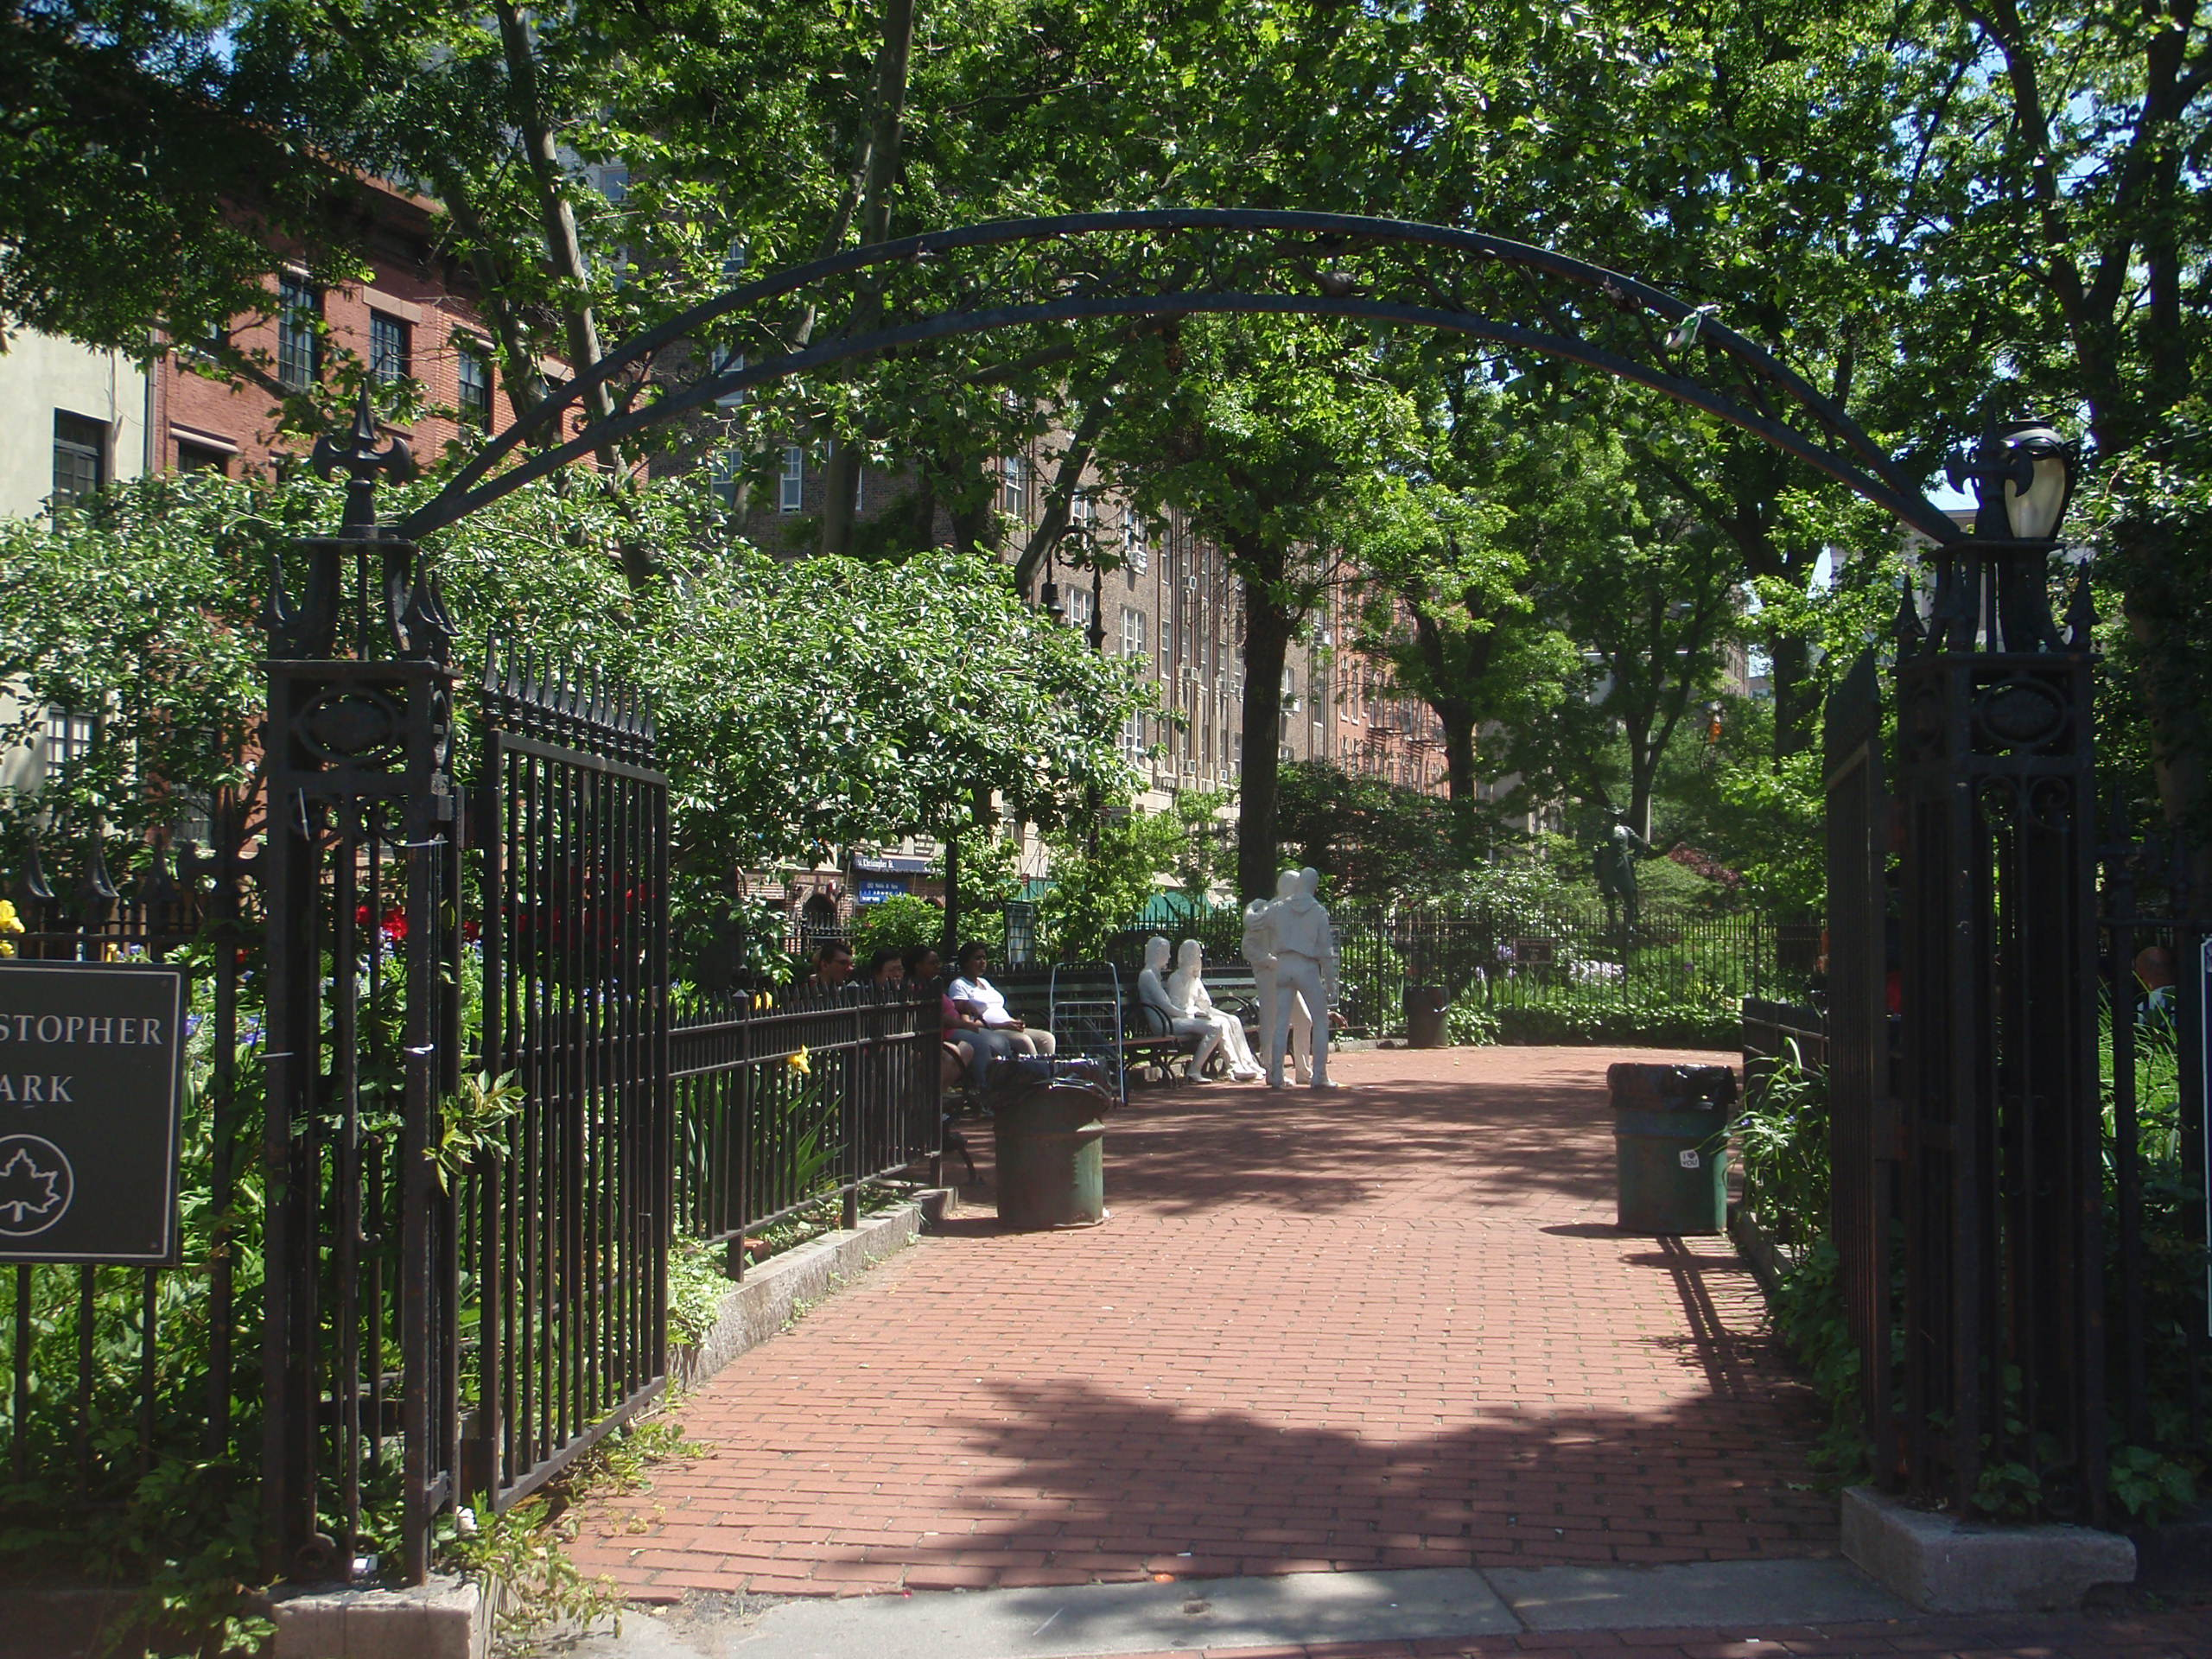 Gated entrance leads to a brick walkway with benches, trees, and several memorials.